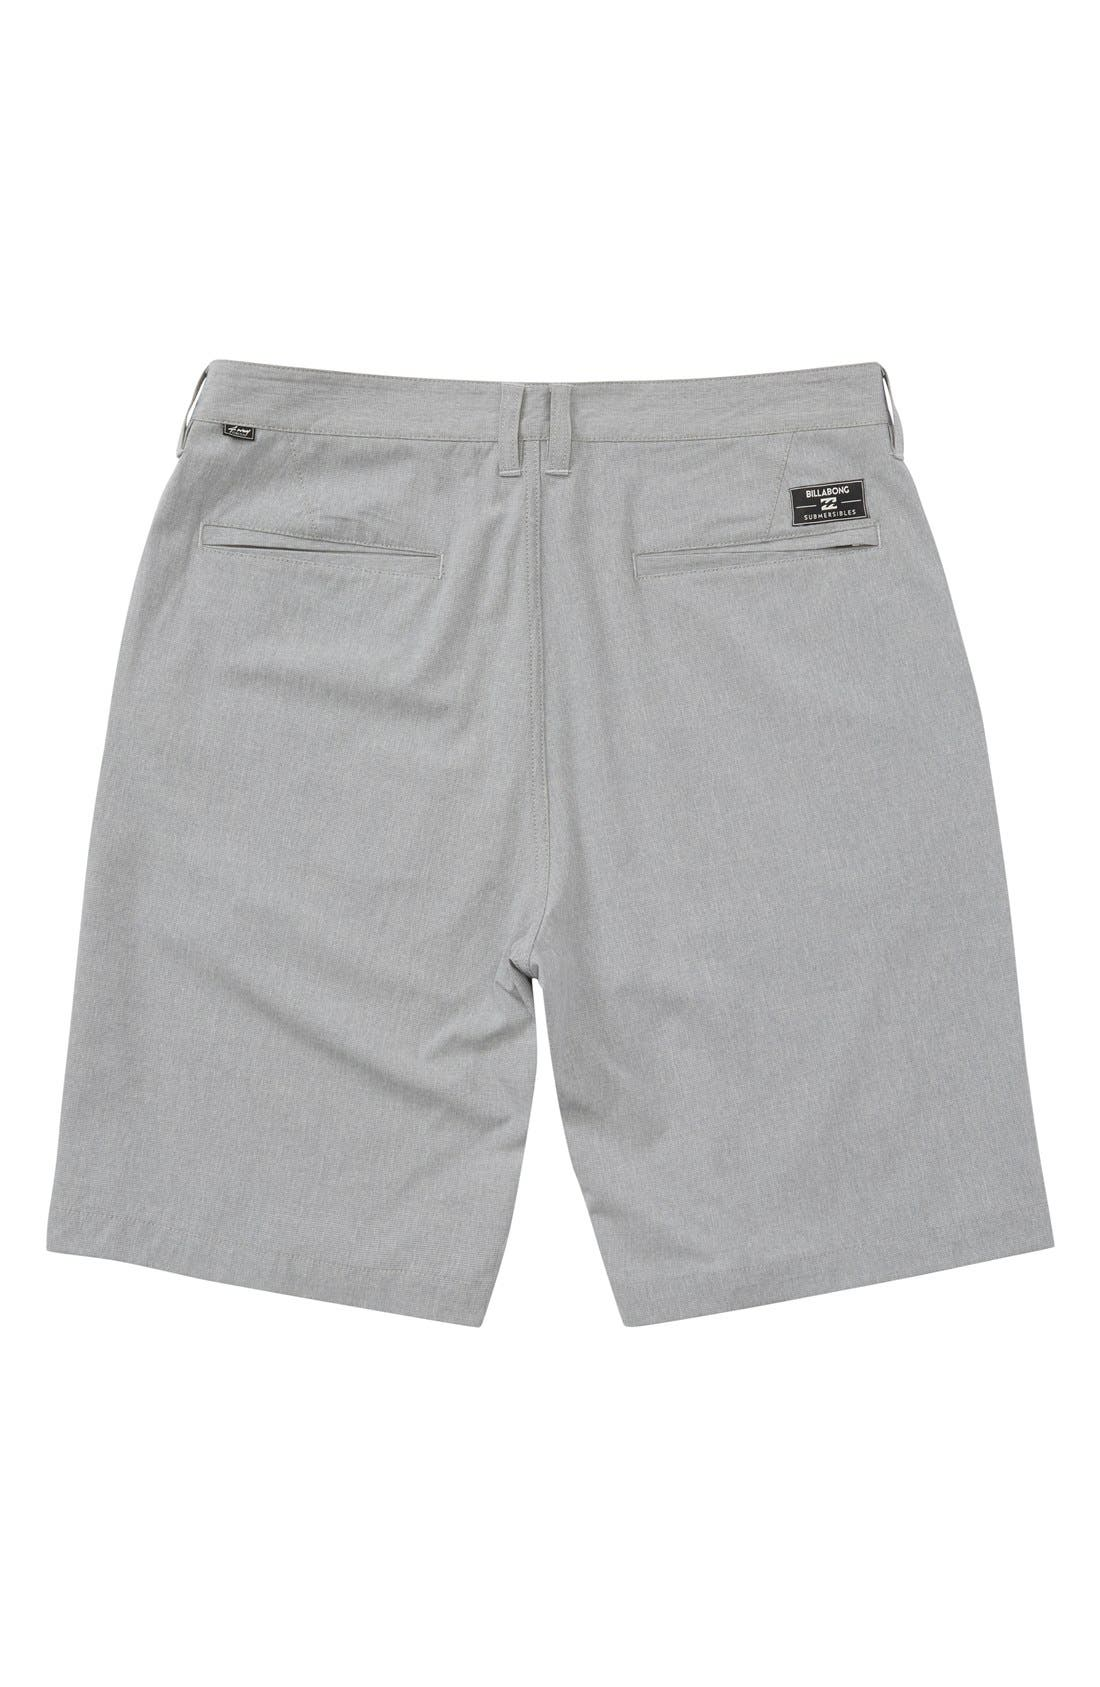 Crossfire X Submersible Hybrid Shorts,                             Alternate thumbnail 22, color,